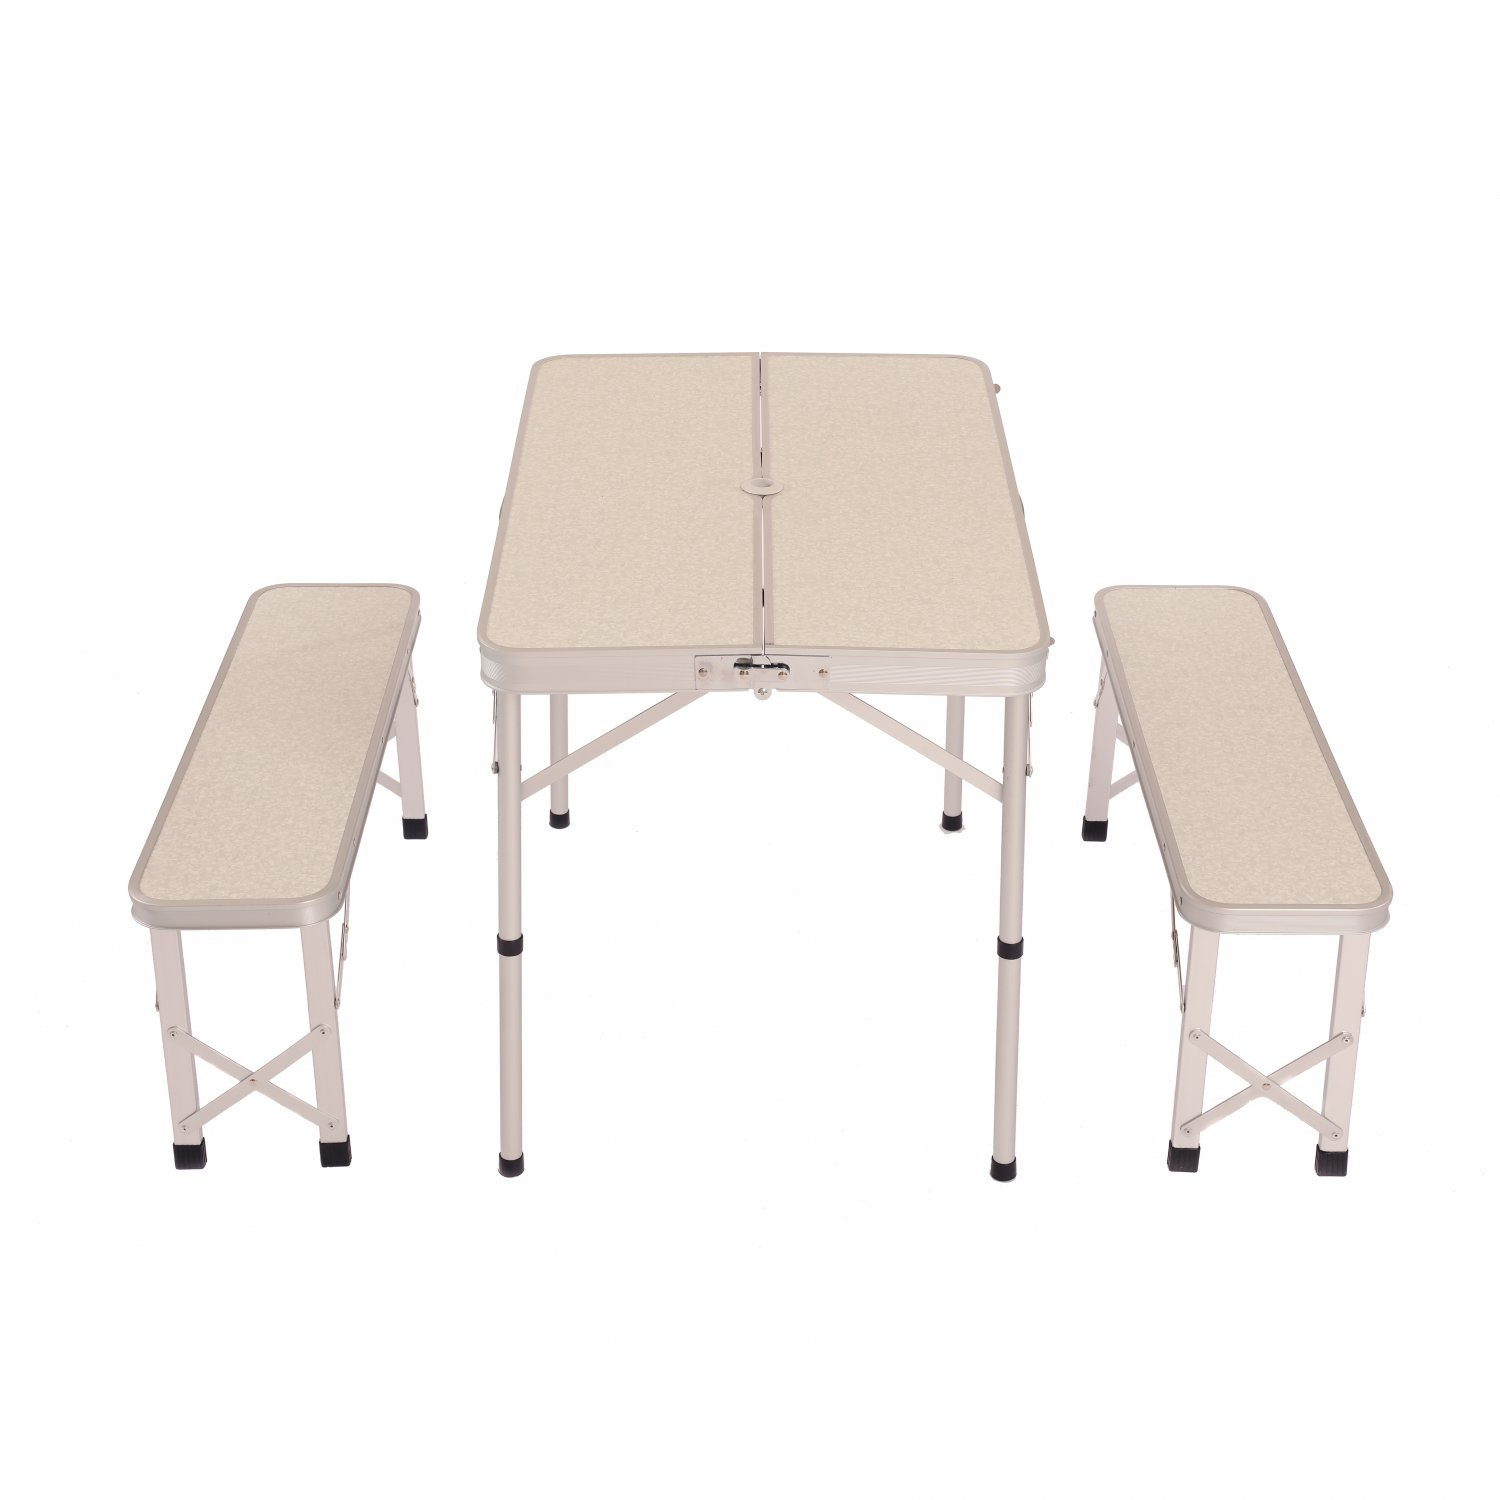 3ft folding outdoor camping kitchen work top table and